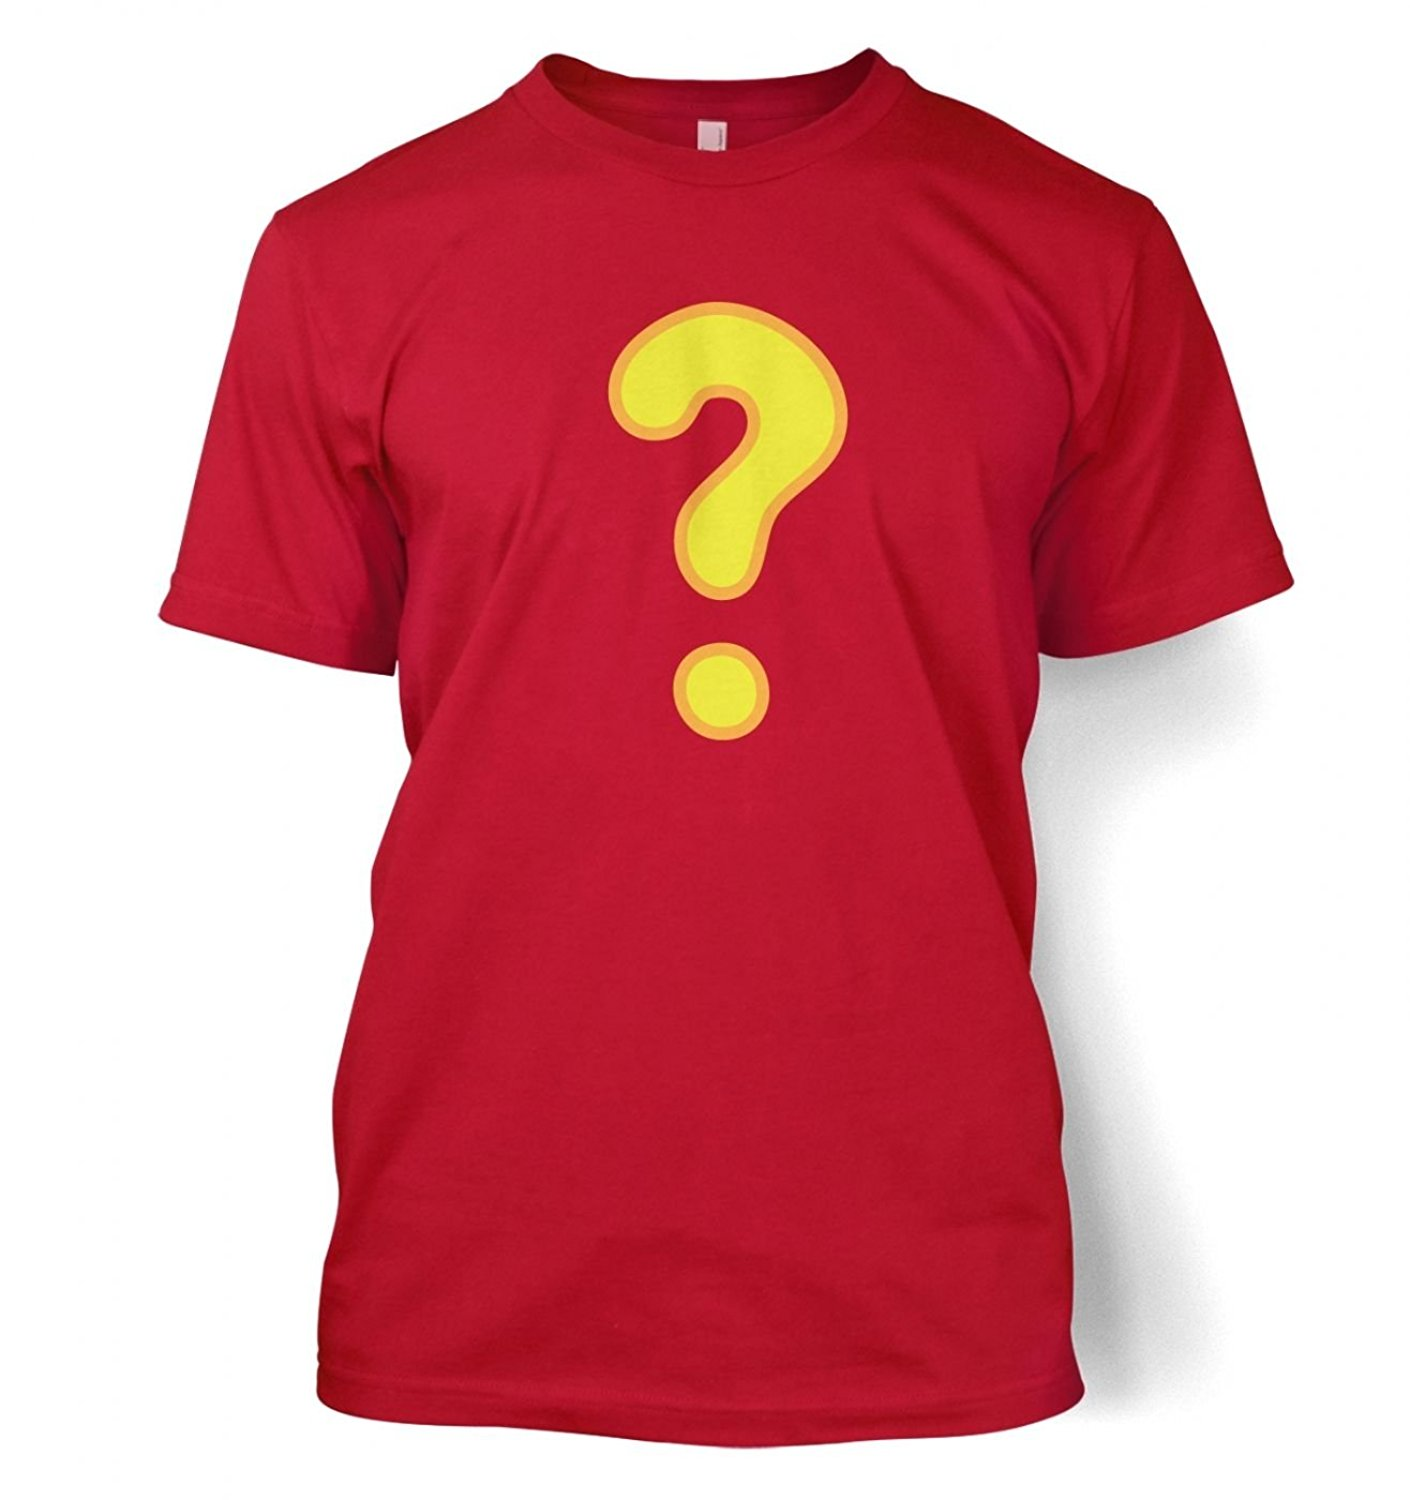 Tops Cool T Shirt MenS Short Cotton Crew Neck Gamer Geek Quest Question Mark Shirts